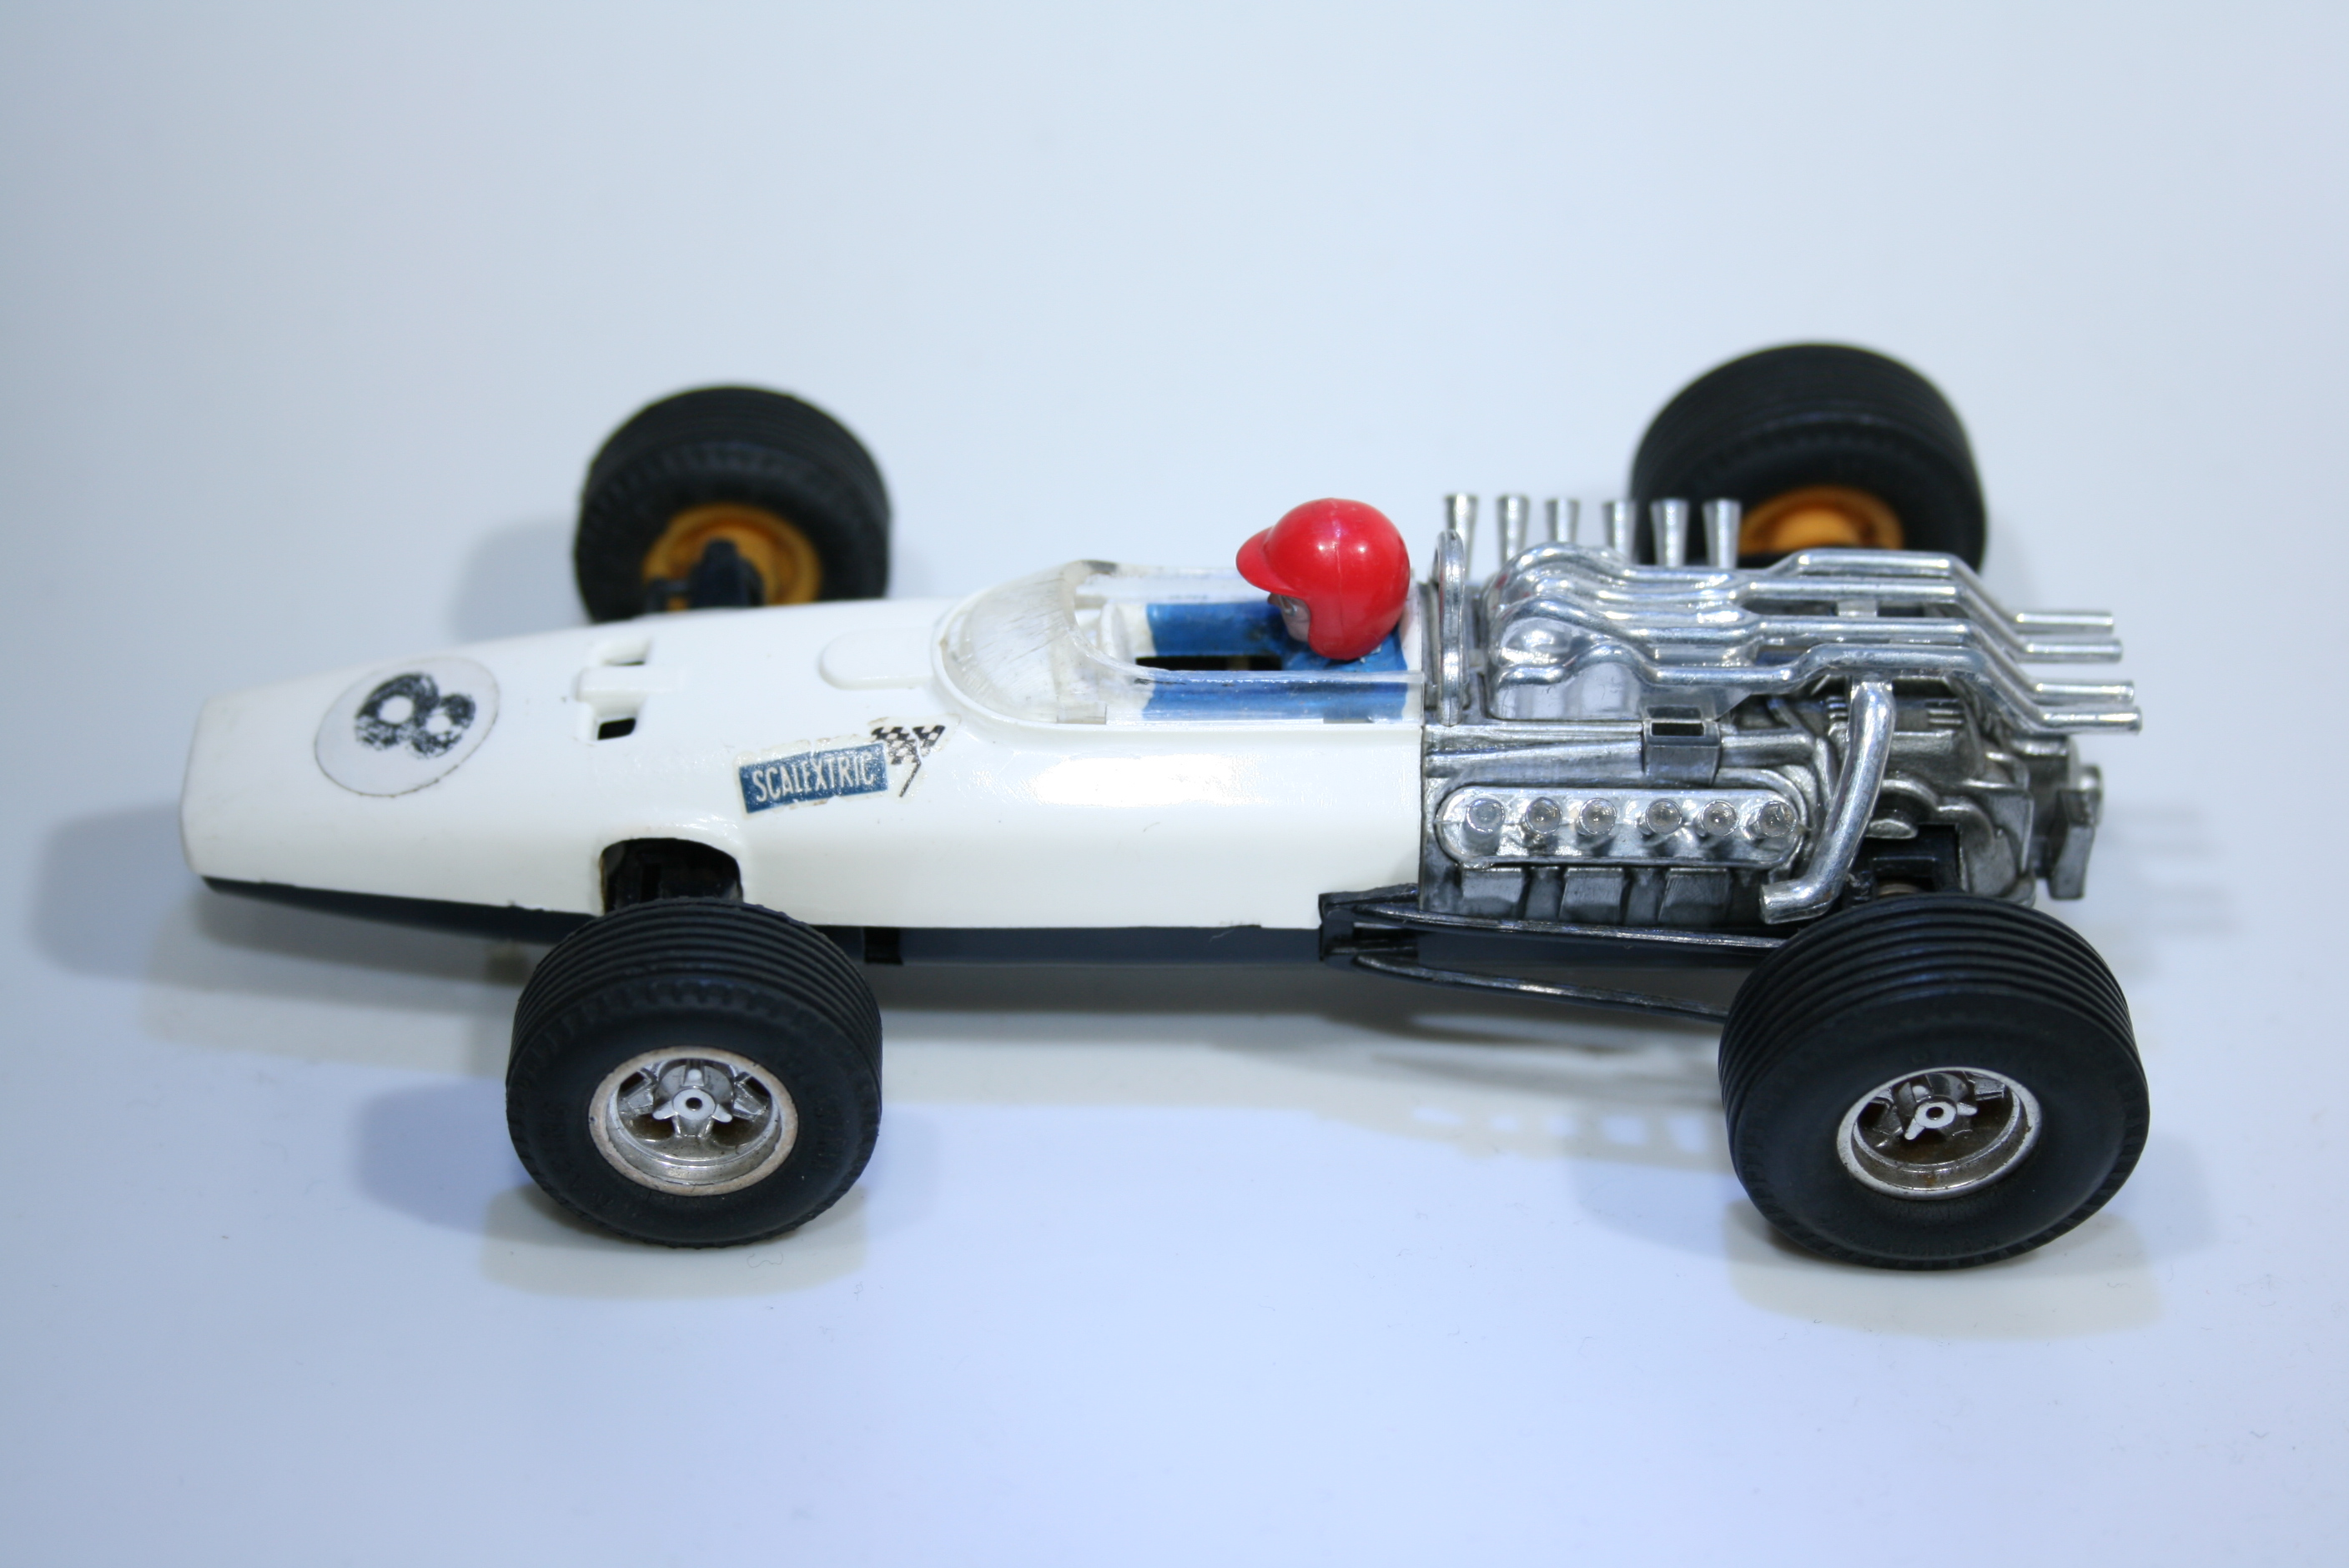 516 Honda RA273 1967 J Surtees Scalextric C36 1968-70